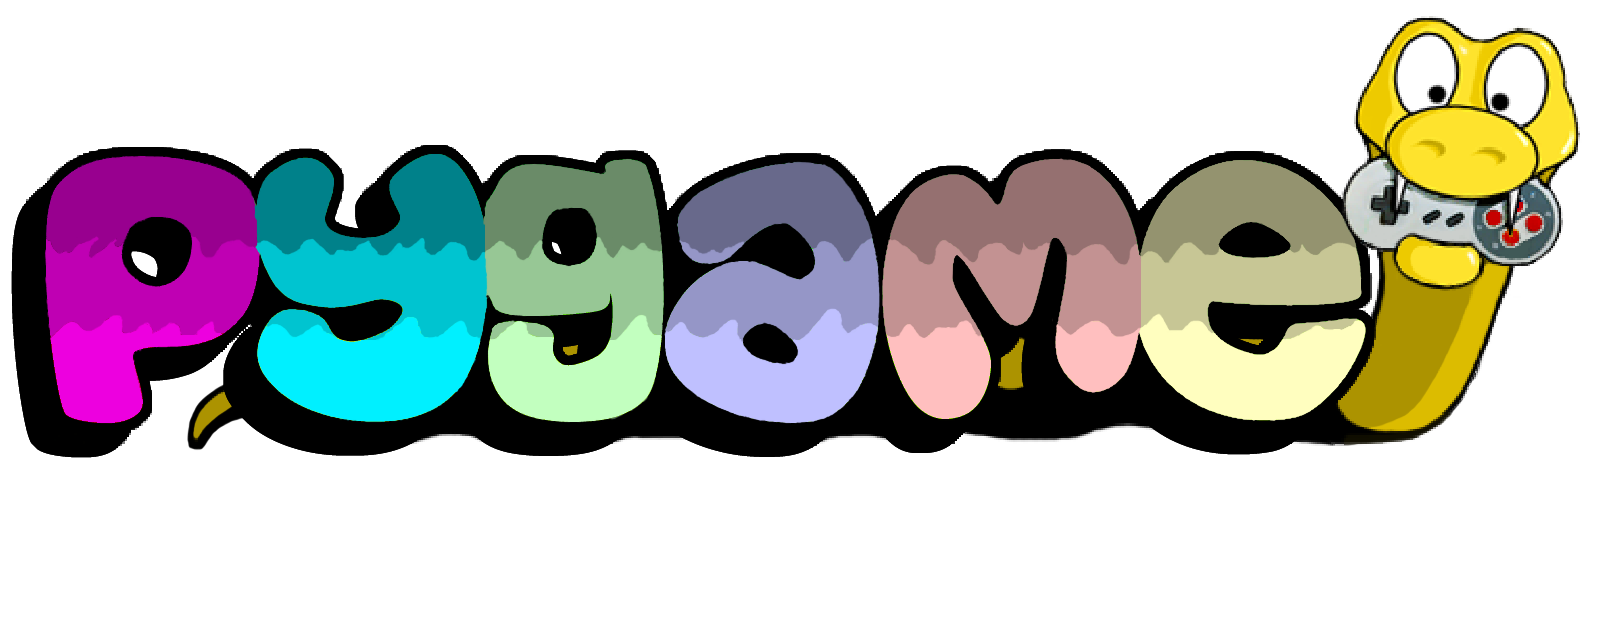 Pygame logo where letters appears with a python at right side